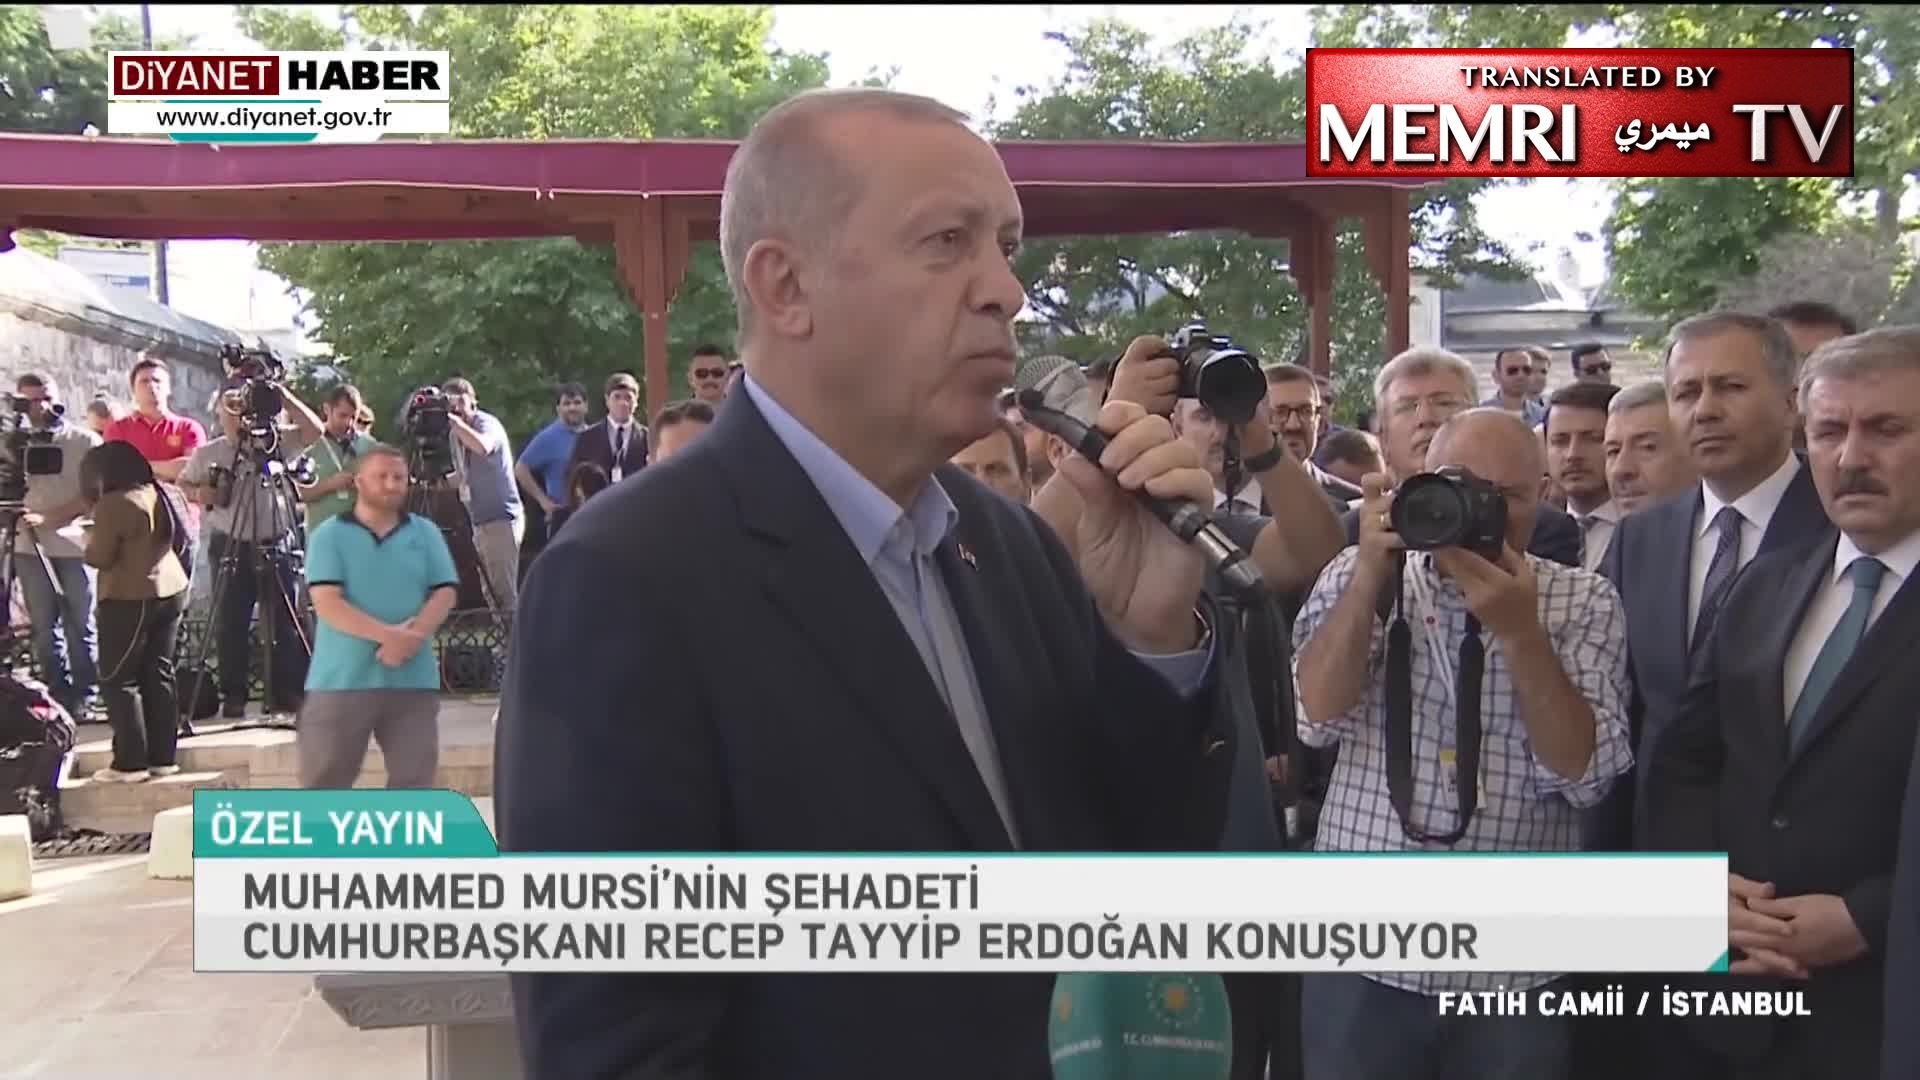 At Turkey Memorial Service for Mohamed Morsi, Crowd Chants Antisemitic Slogans; Turkish President Erdoğan: Morsi Is a Martyr; I Doubt His Death Was Natural